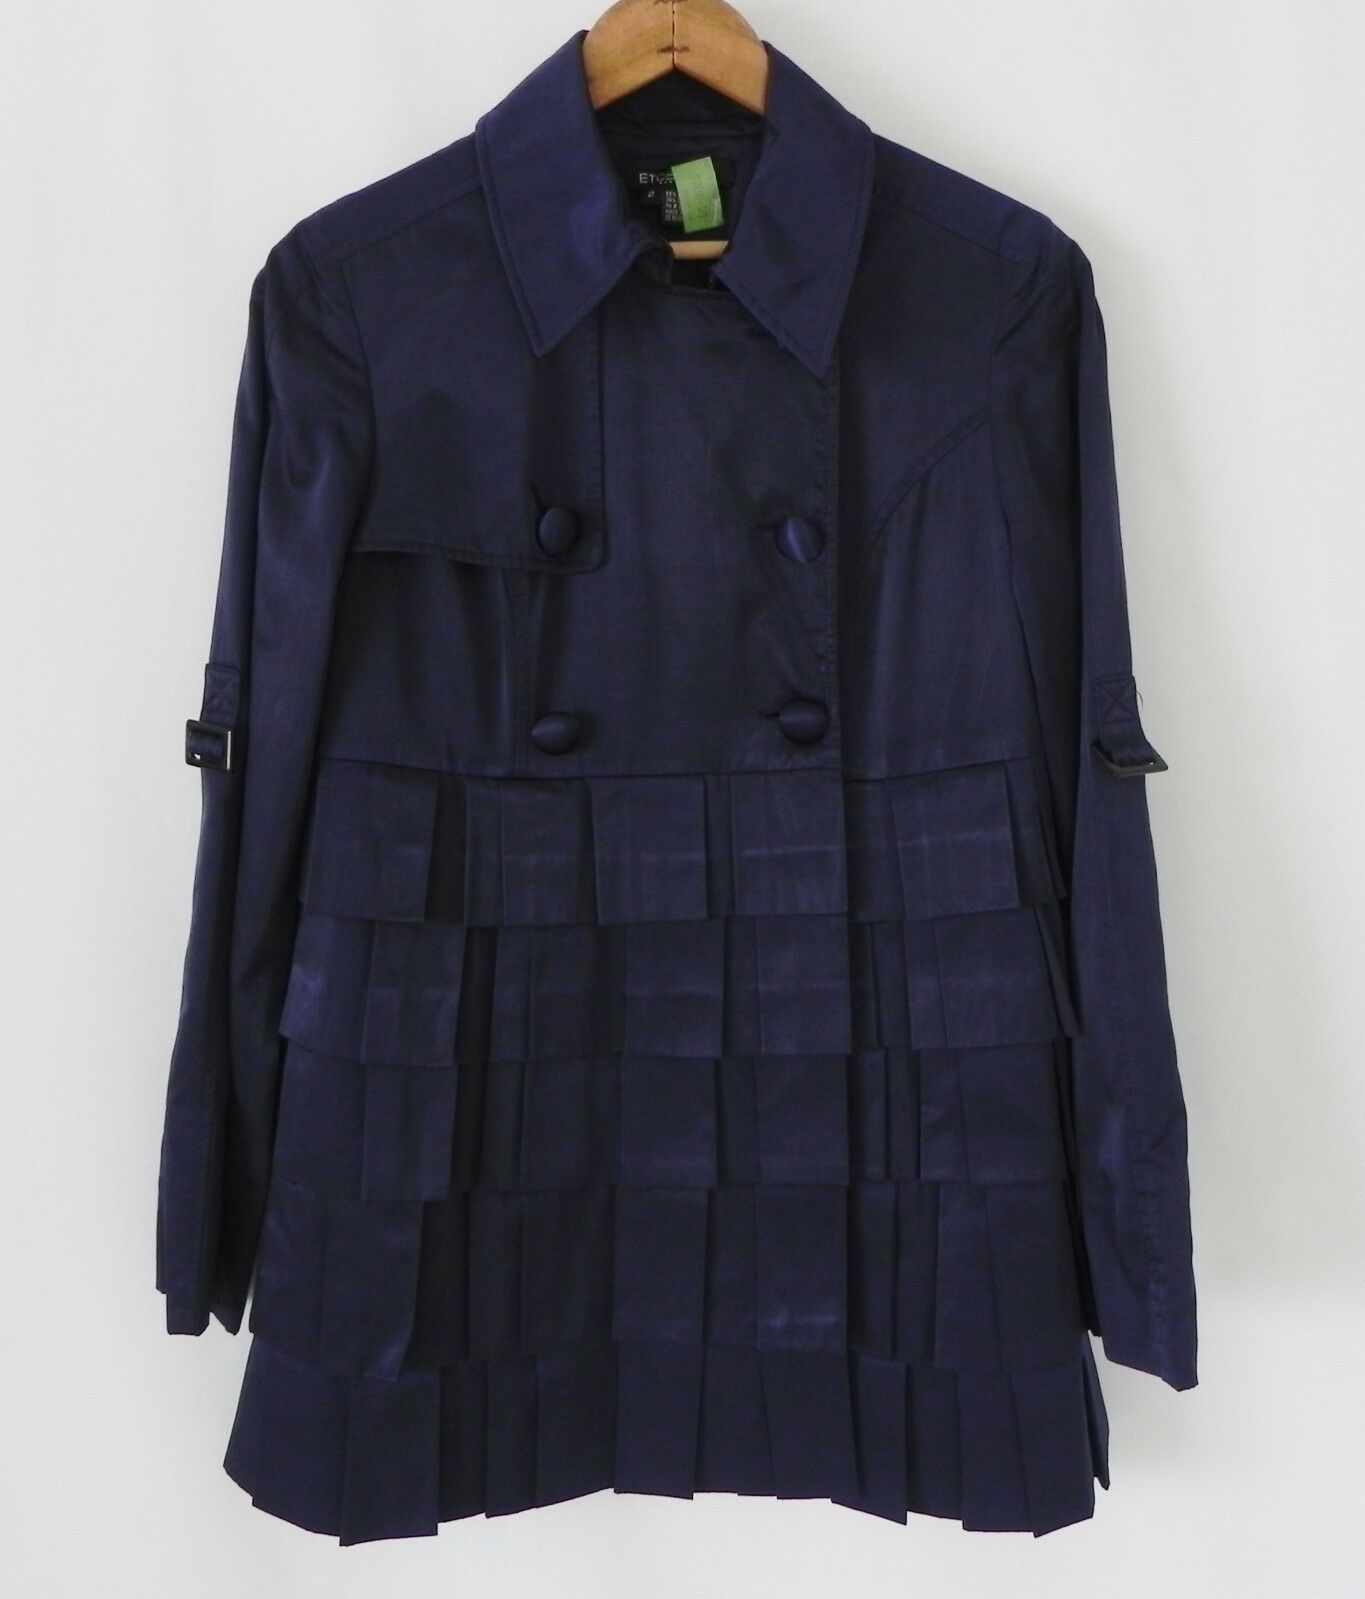 Etcetera Double Breasted Coat   Satin . Tiered . Ruffle . Navy bluee . Size M